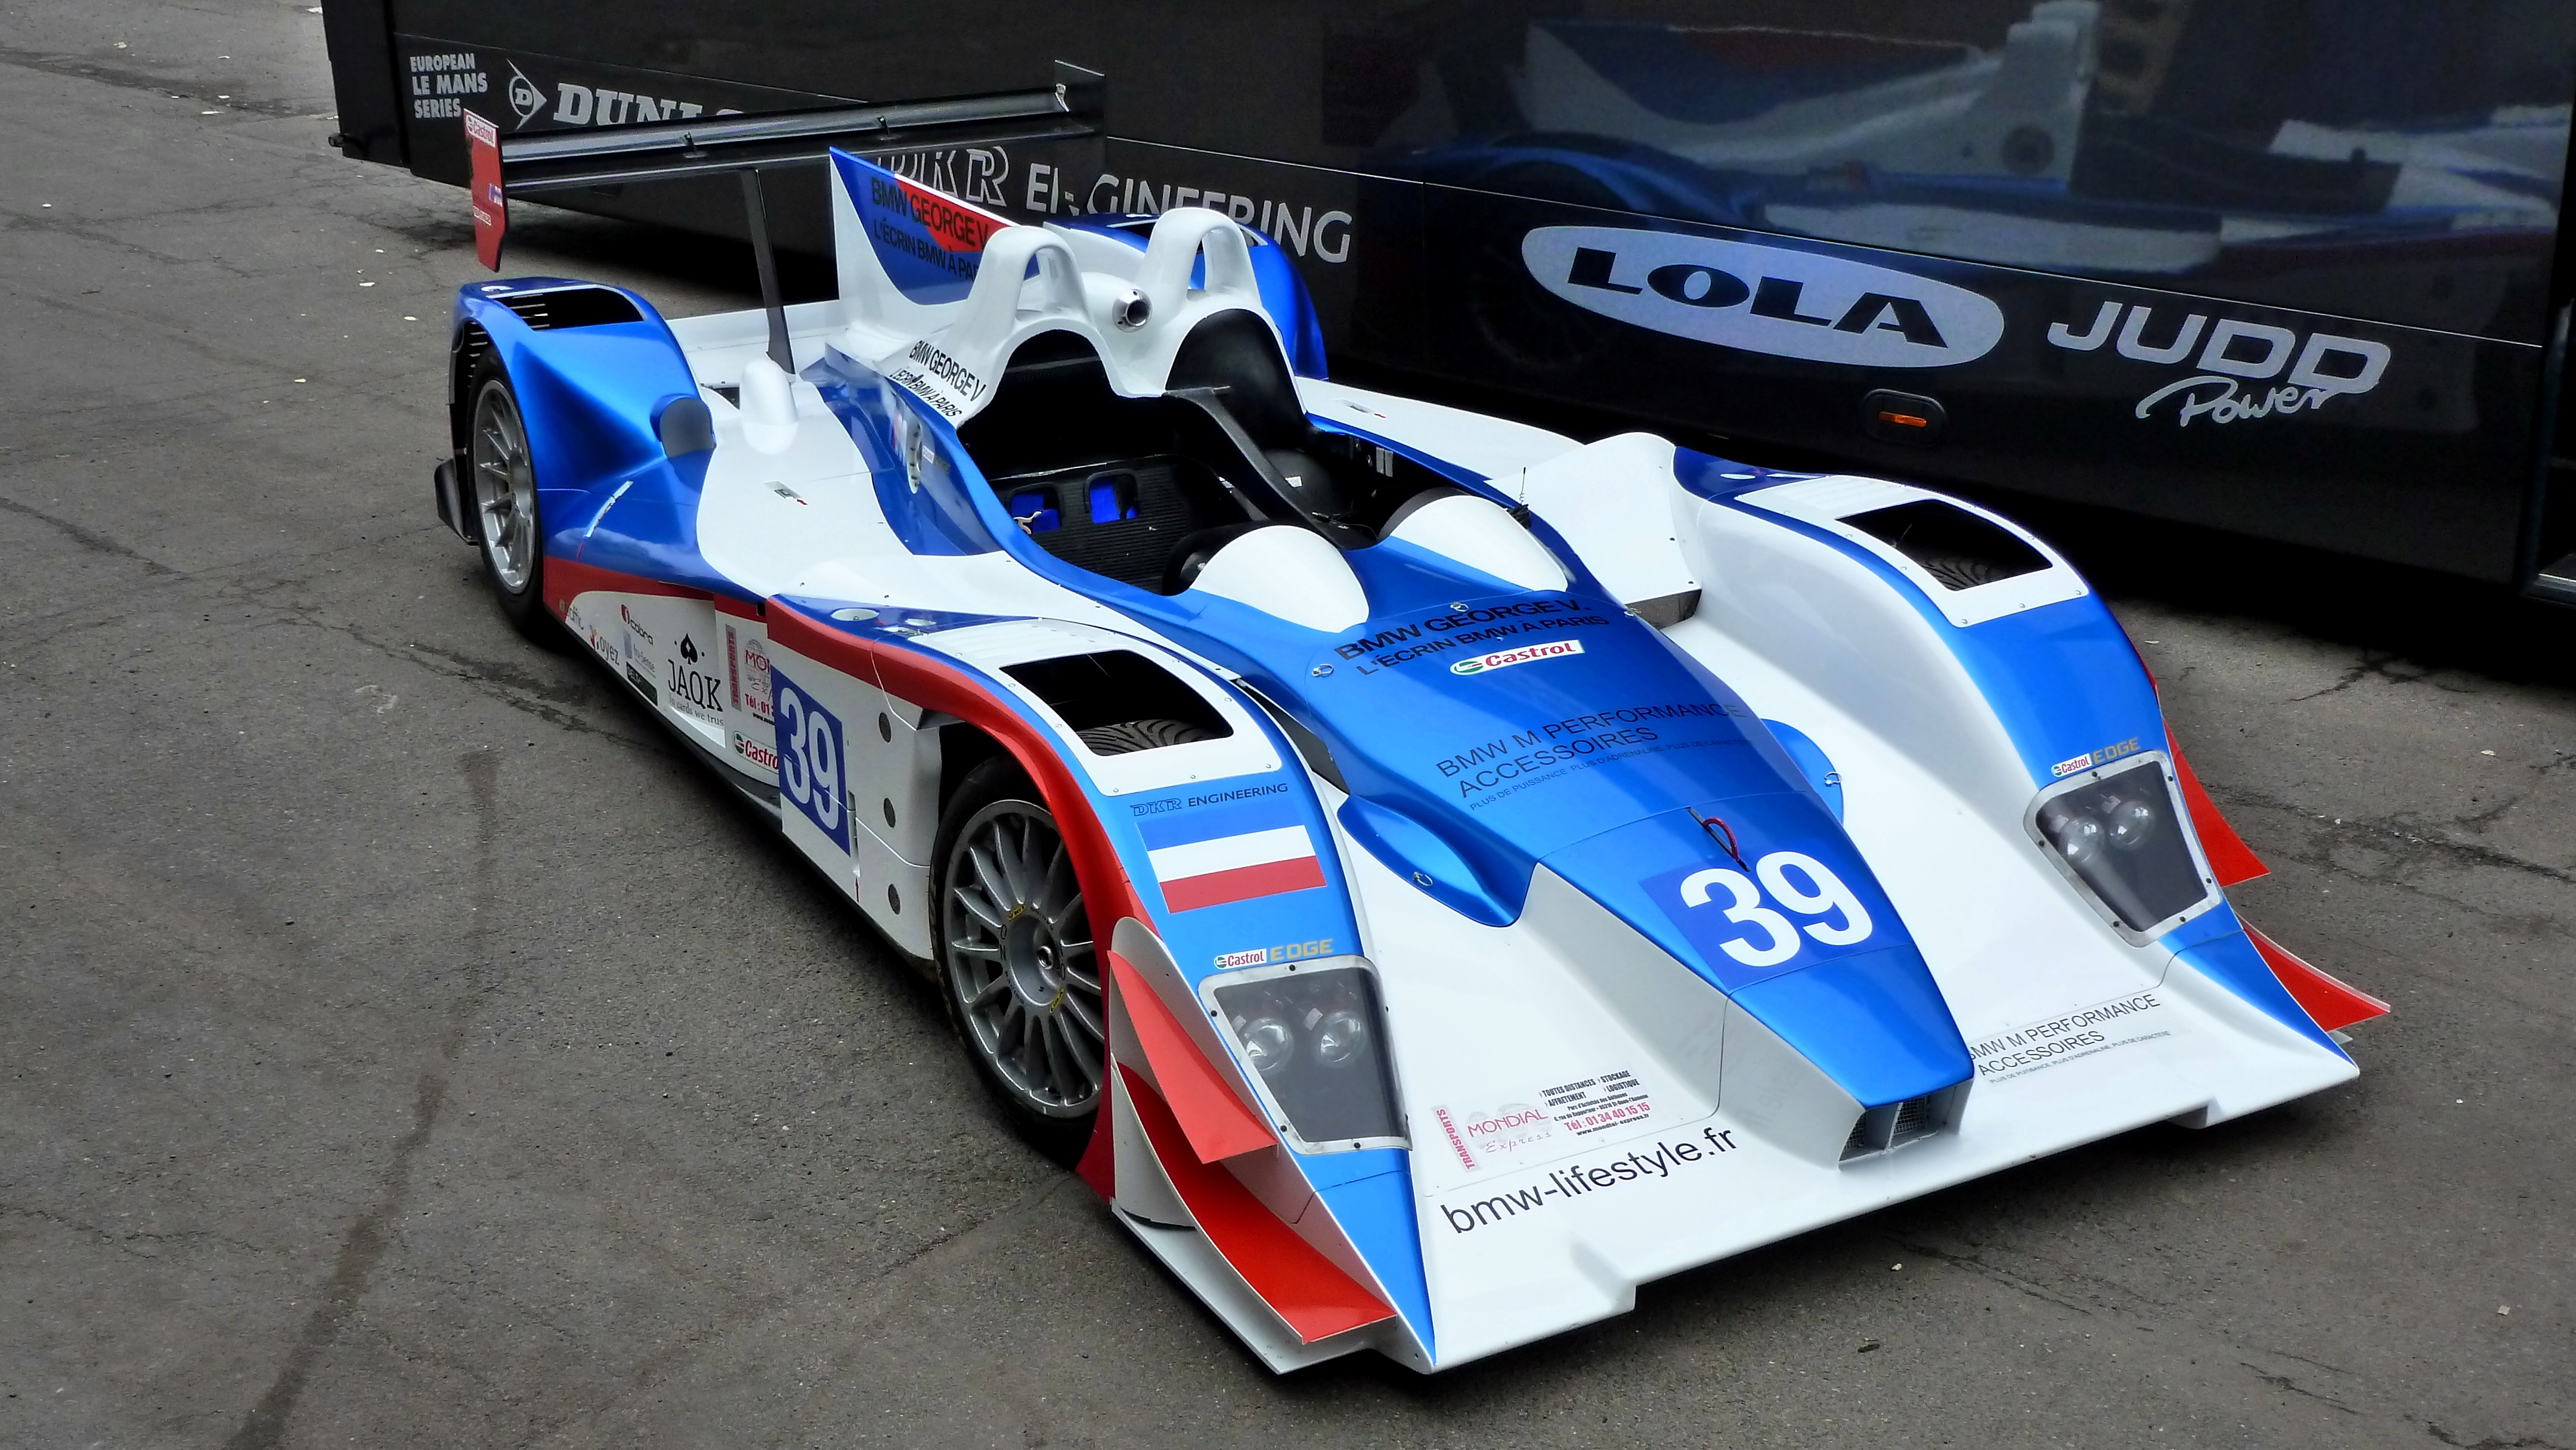 DKR-Engineering-ELMS-2013-Lola-Judd-BMW- Brandela-Porta-3